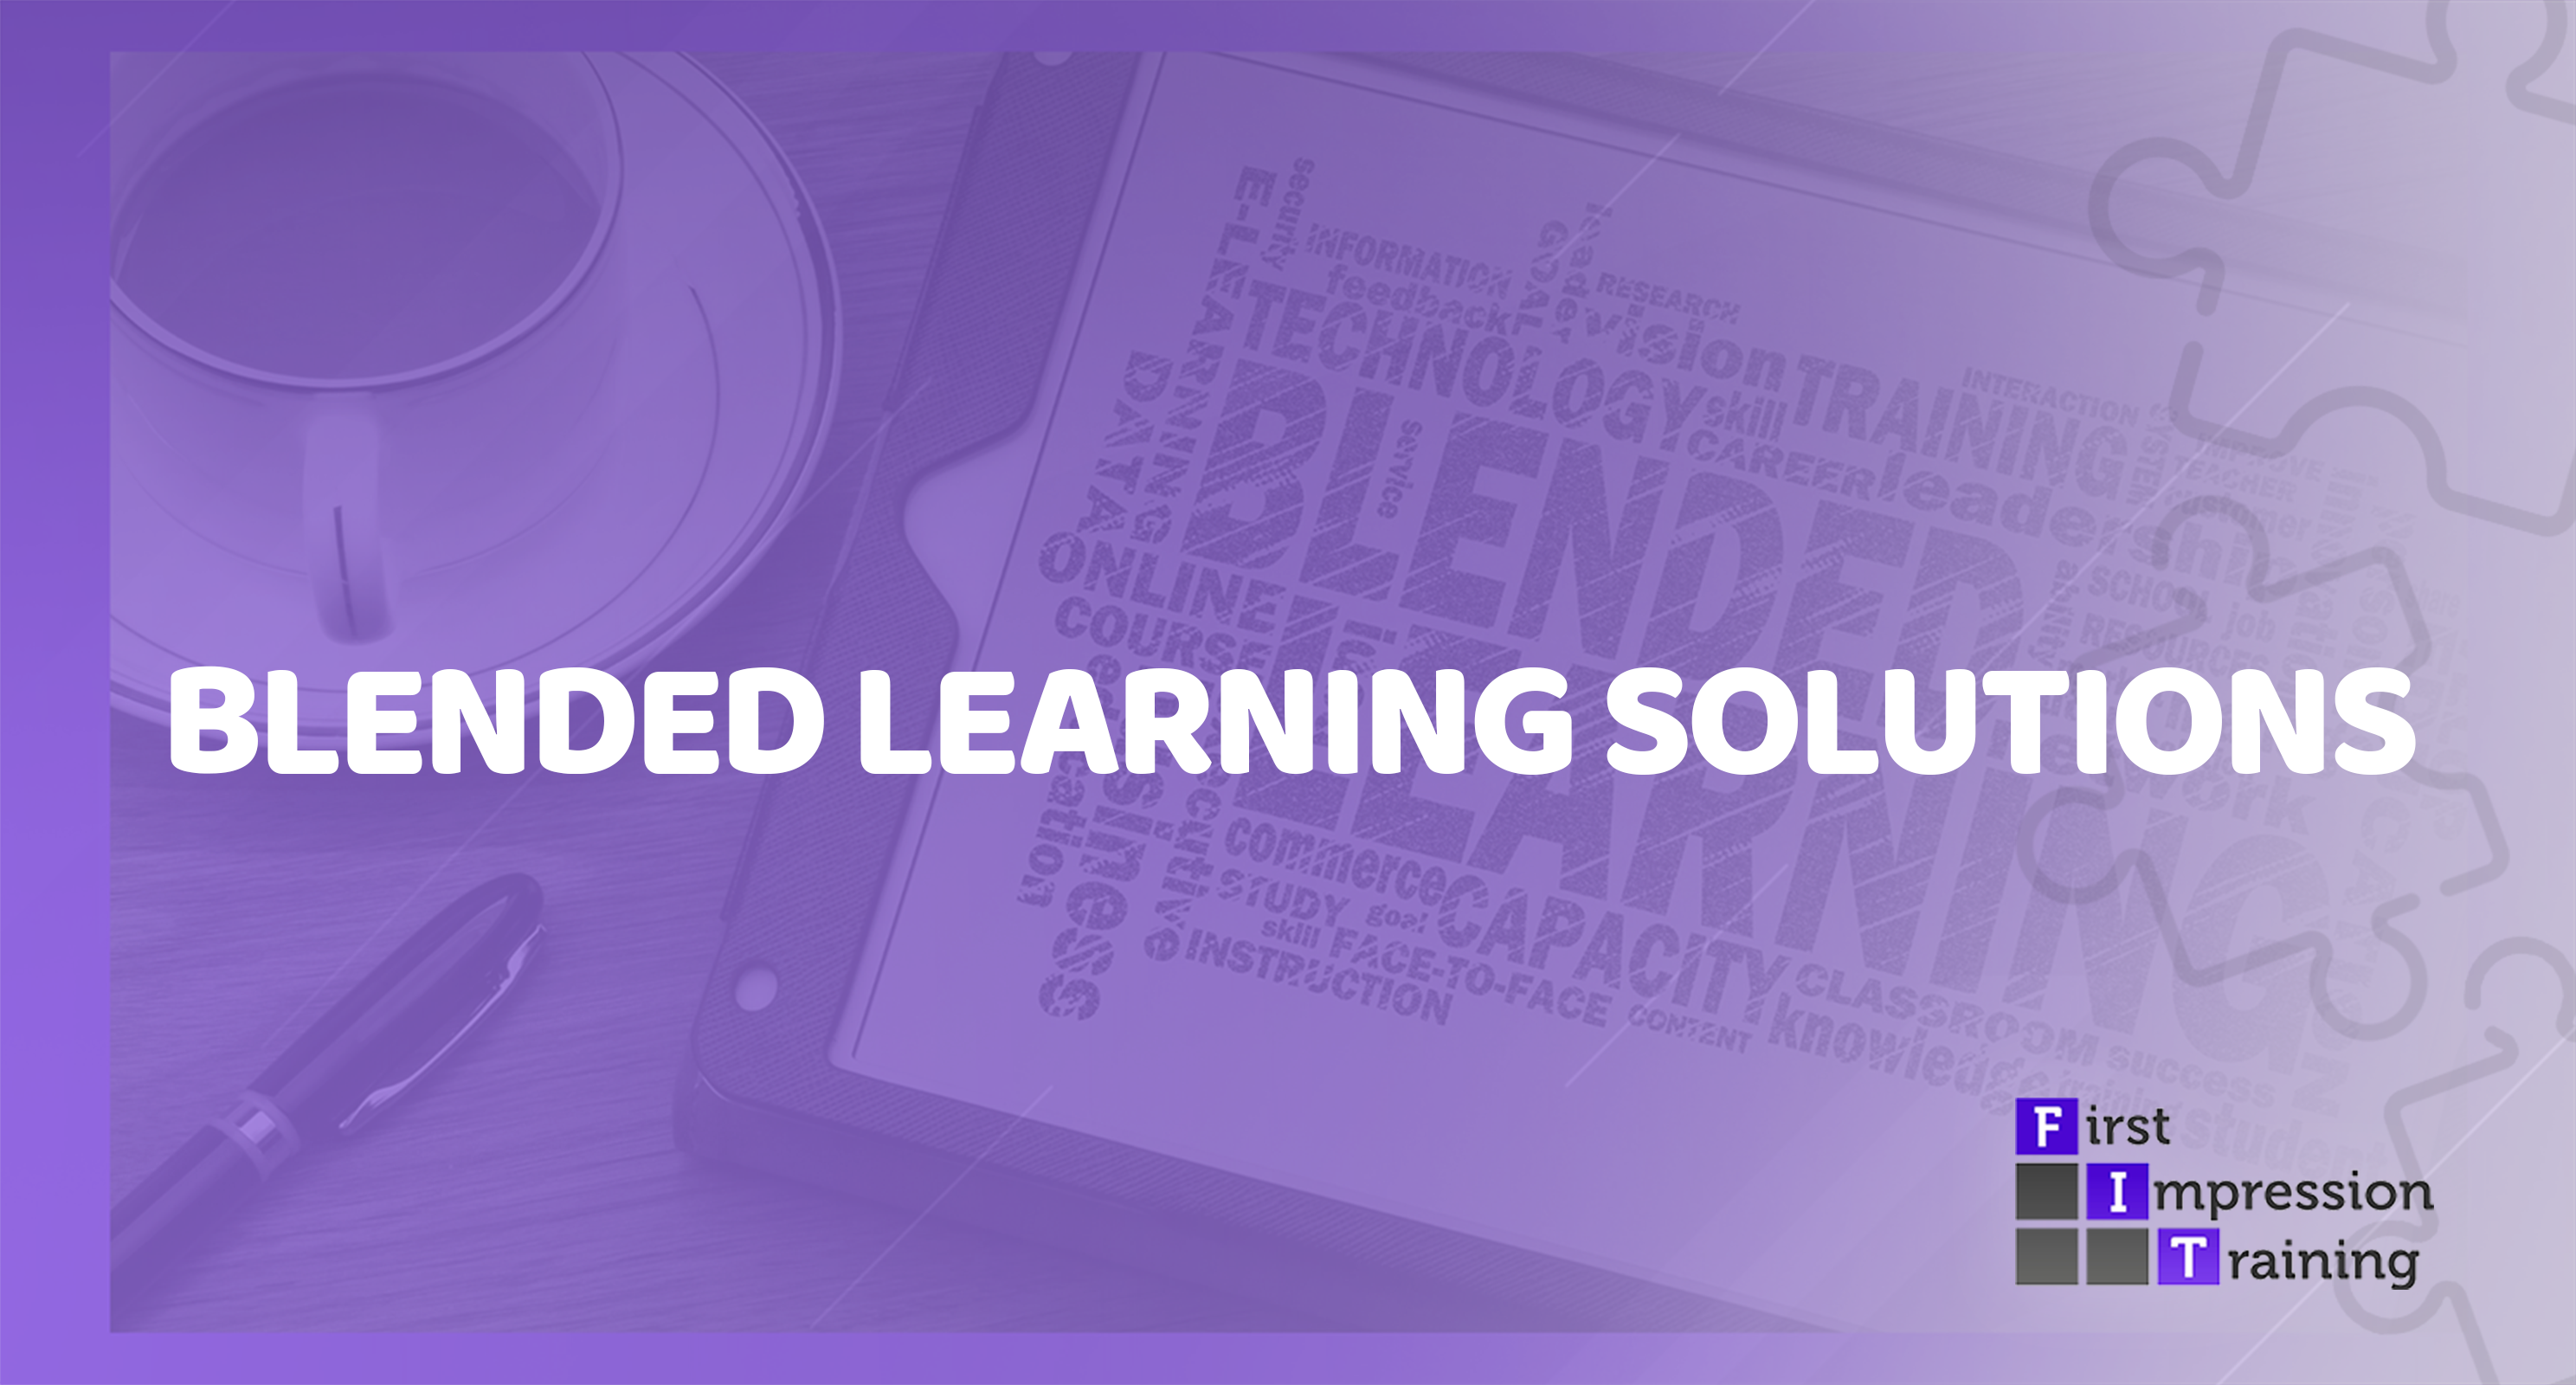 What is a Blended Learning Solution?